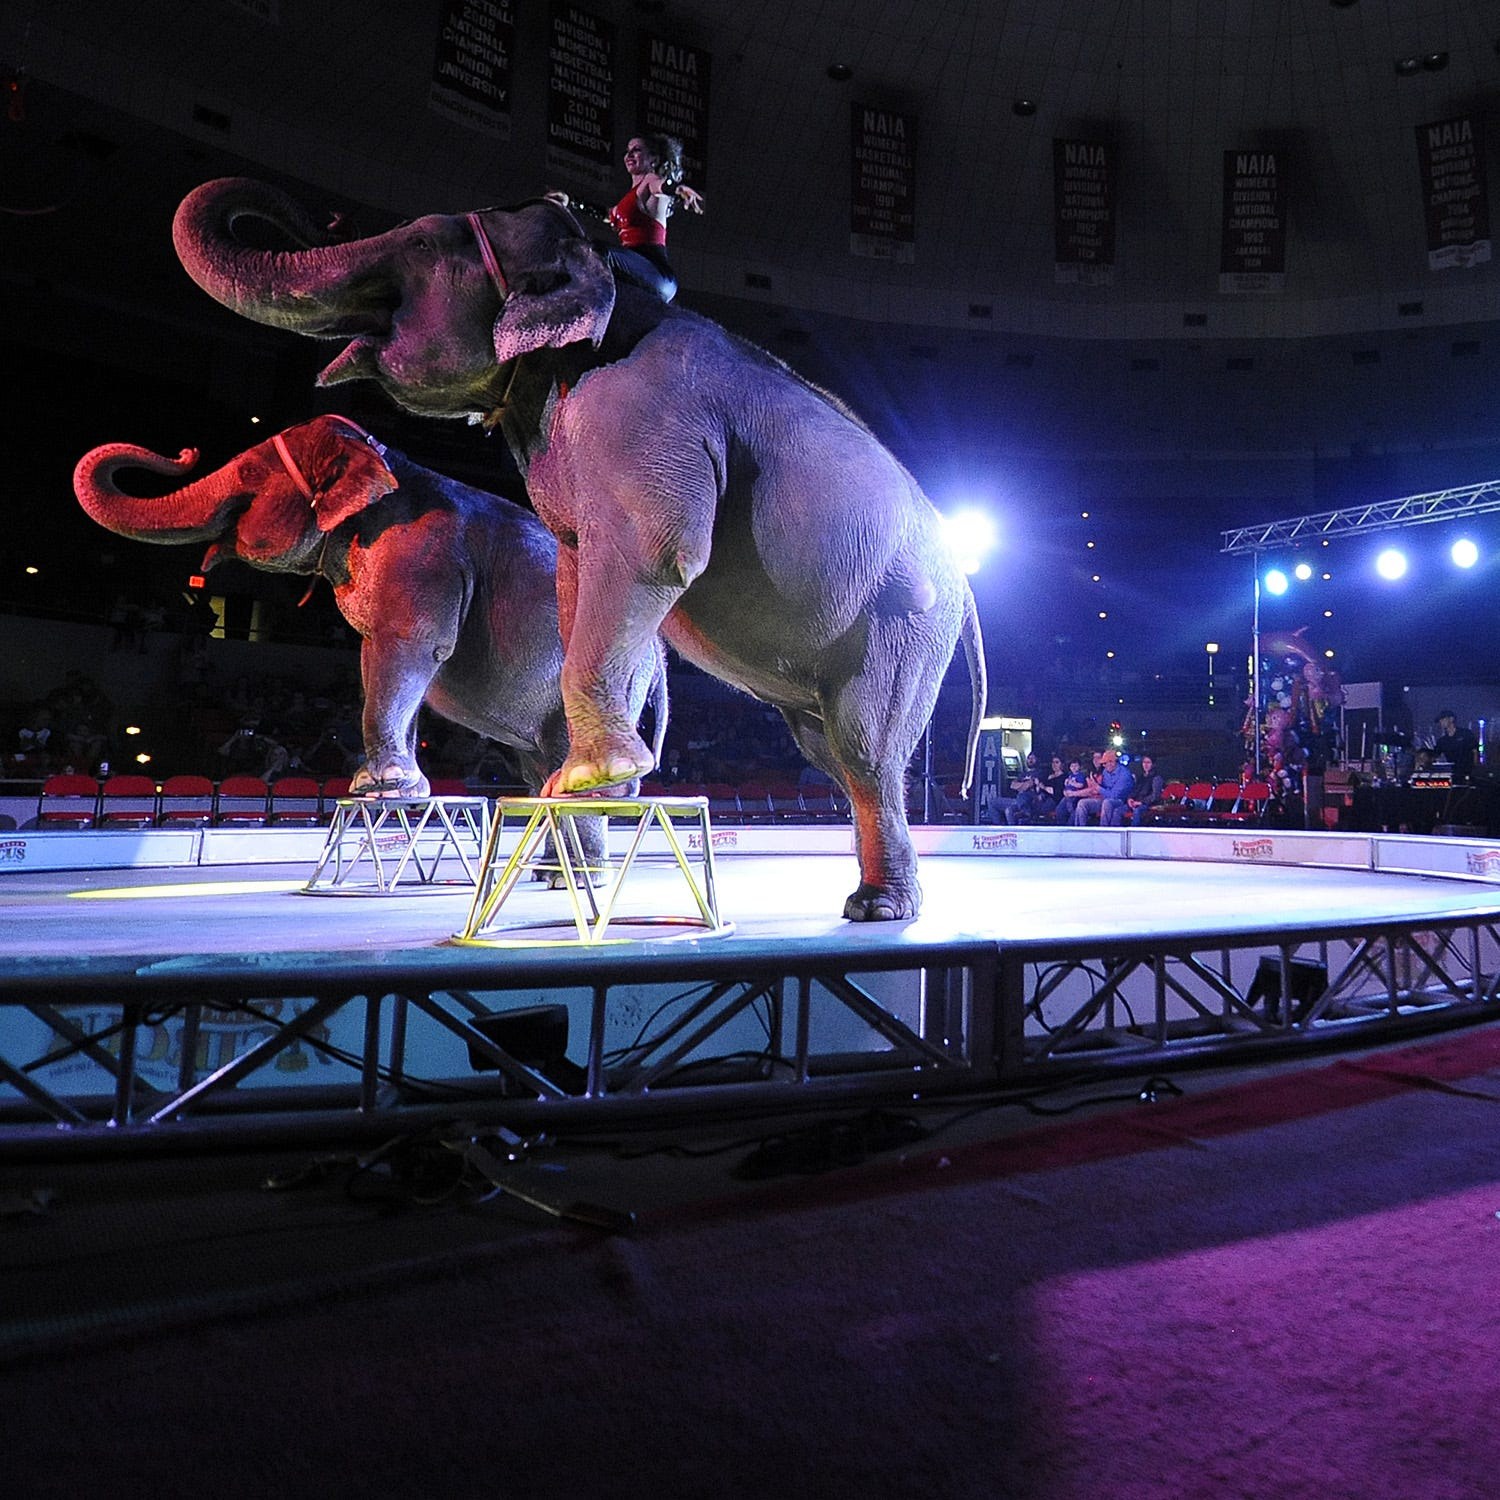 'Worst' circus visits Greenville Convention Center for last shows with performing animals